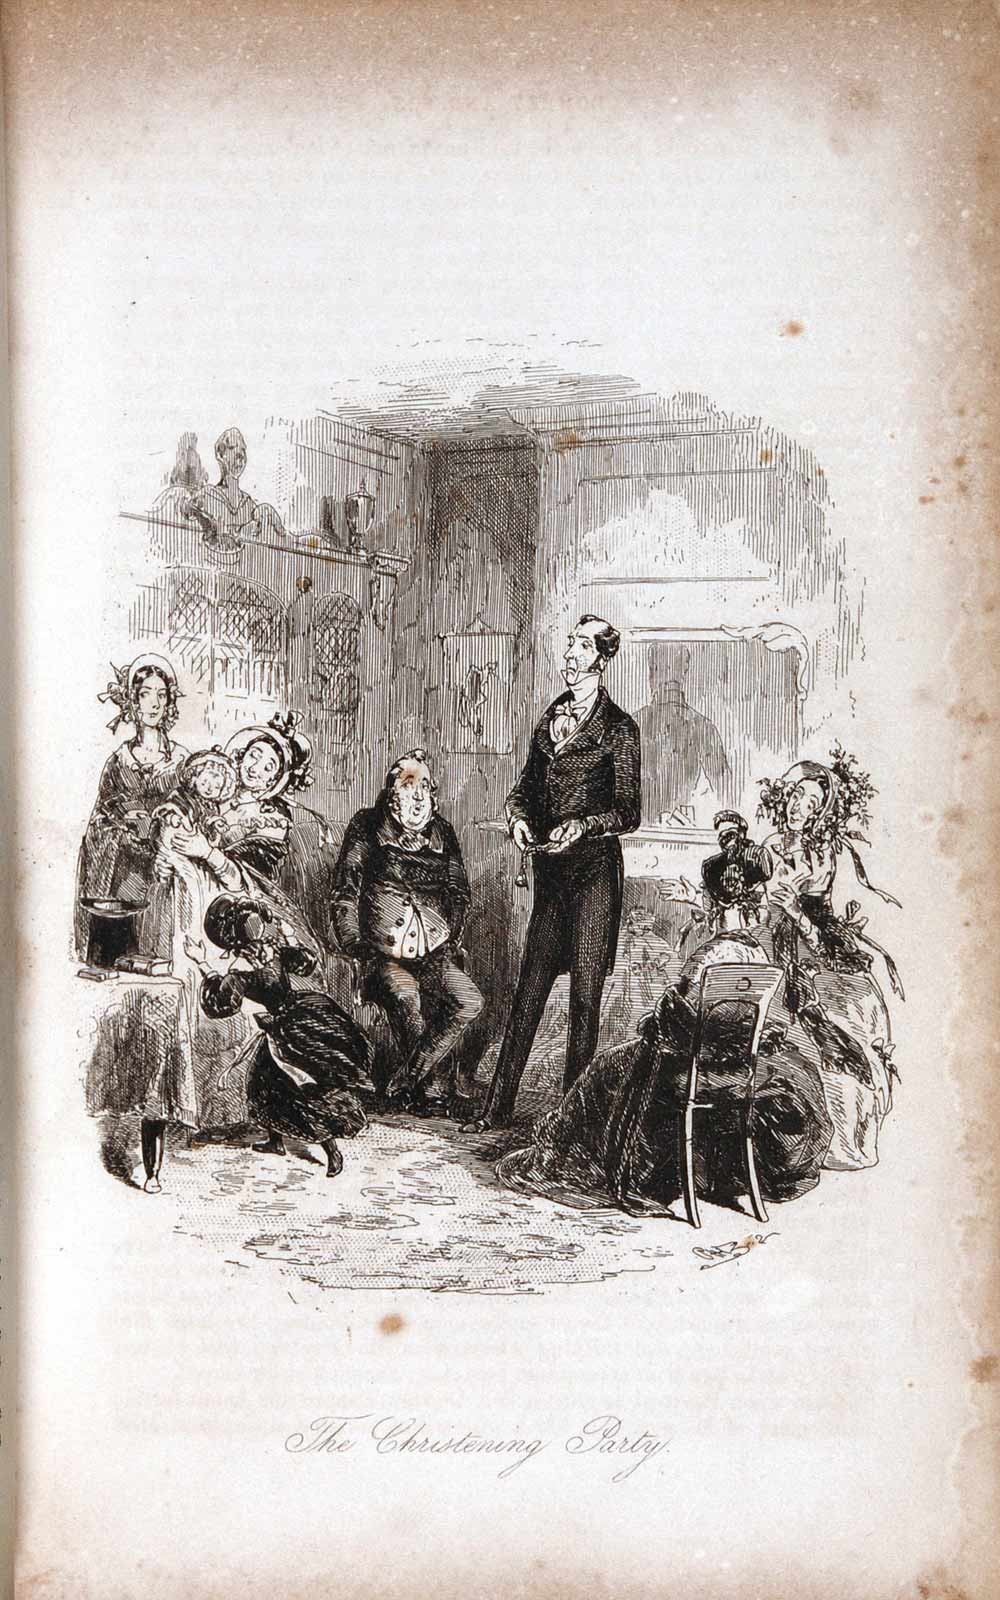 Dombey and Son … with Illustrations by H. K. Browne. London: Bradbury & Evans, 1848; first edition